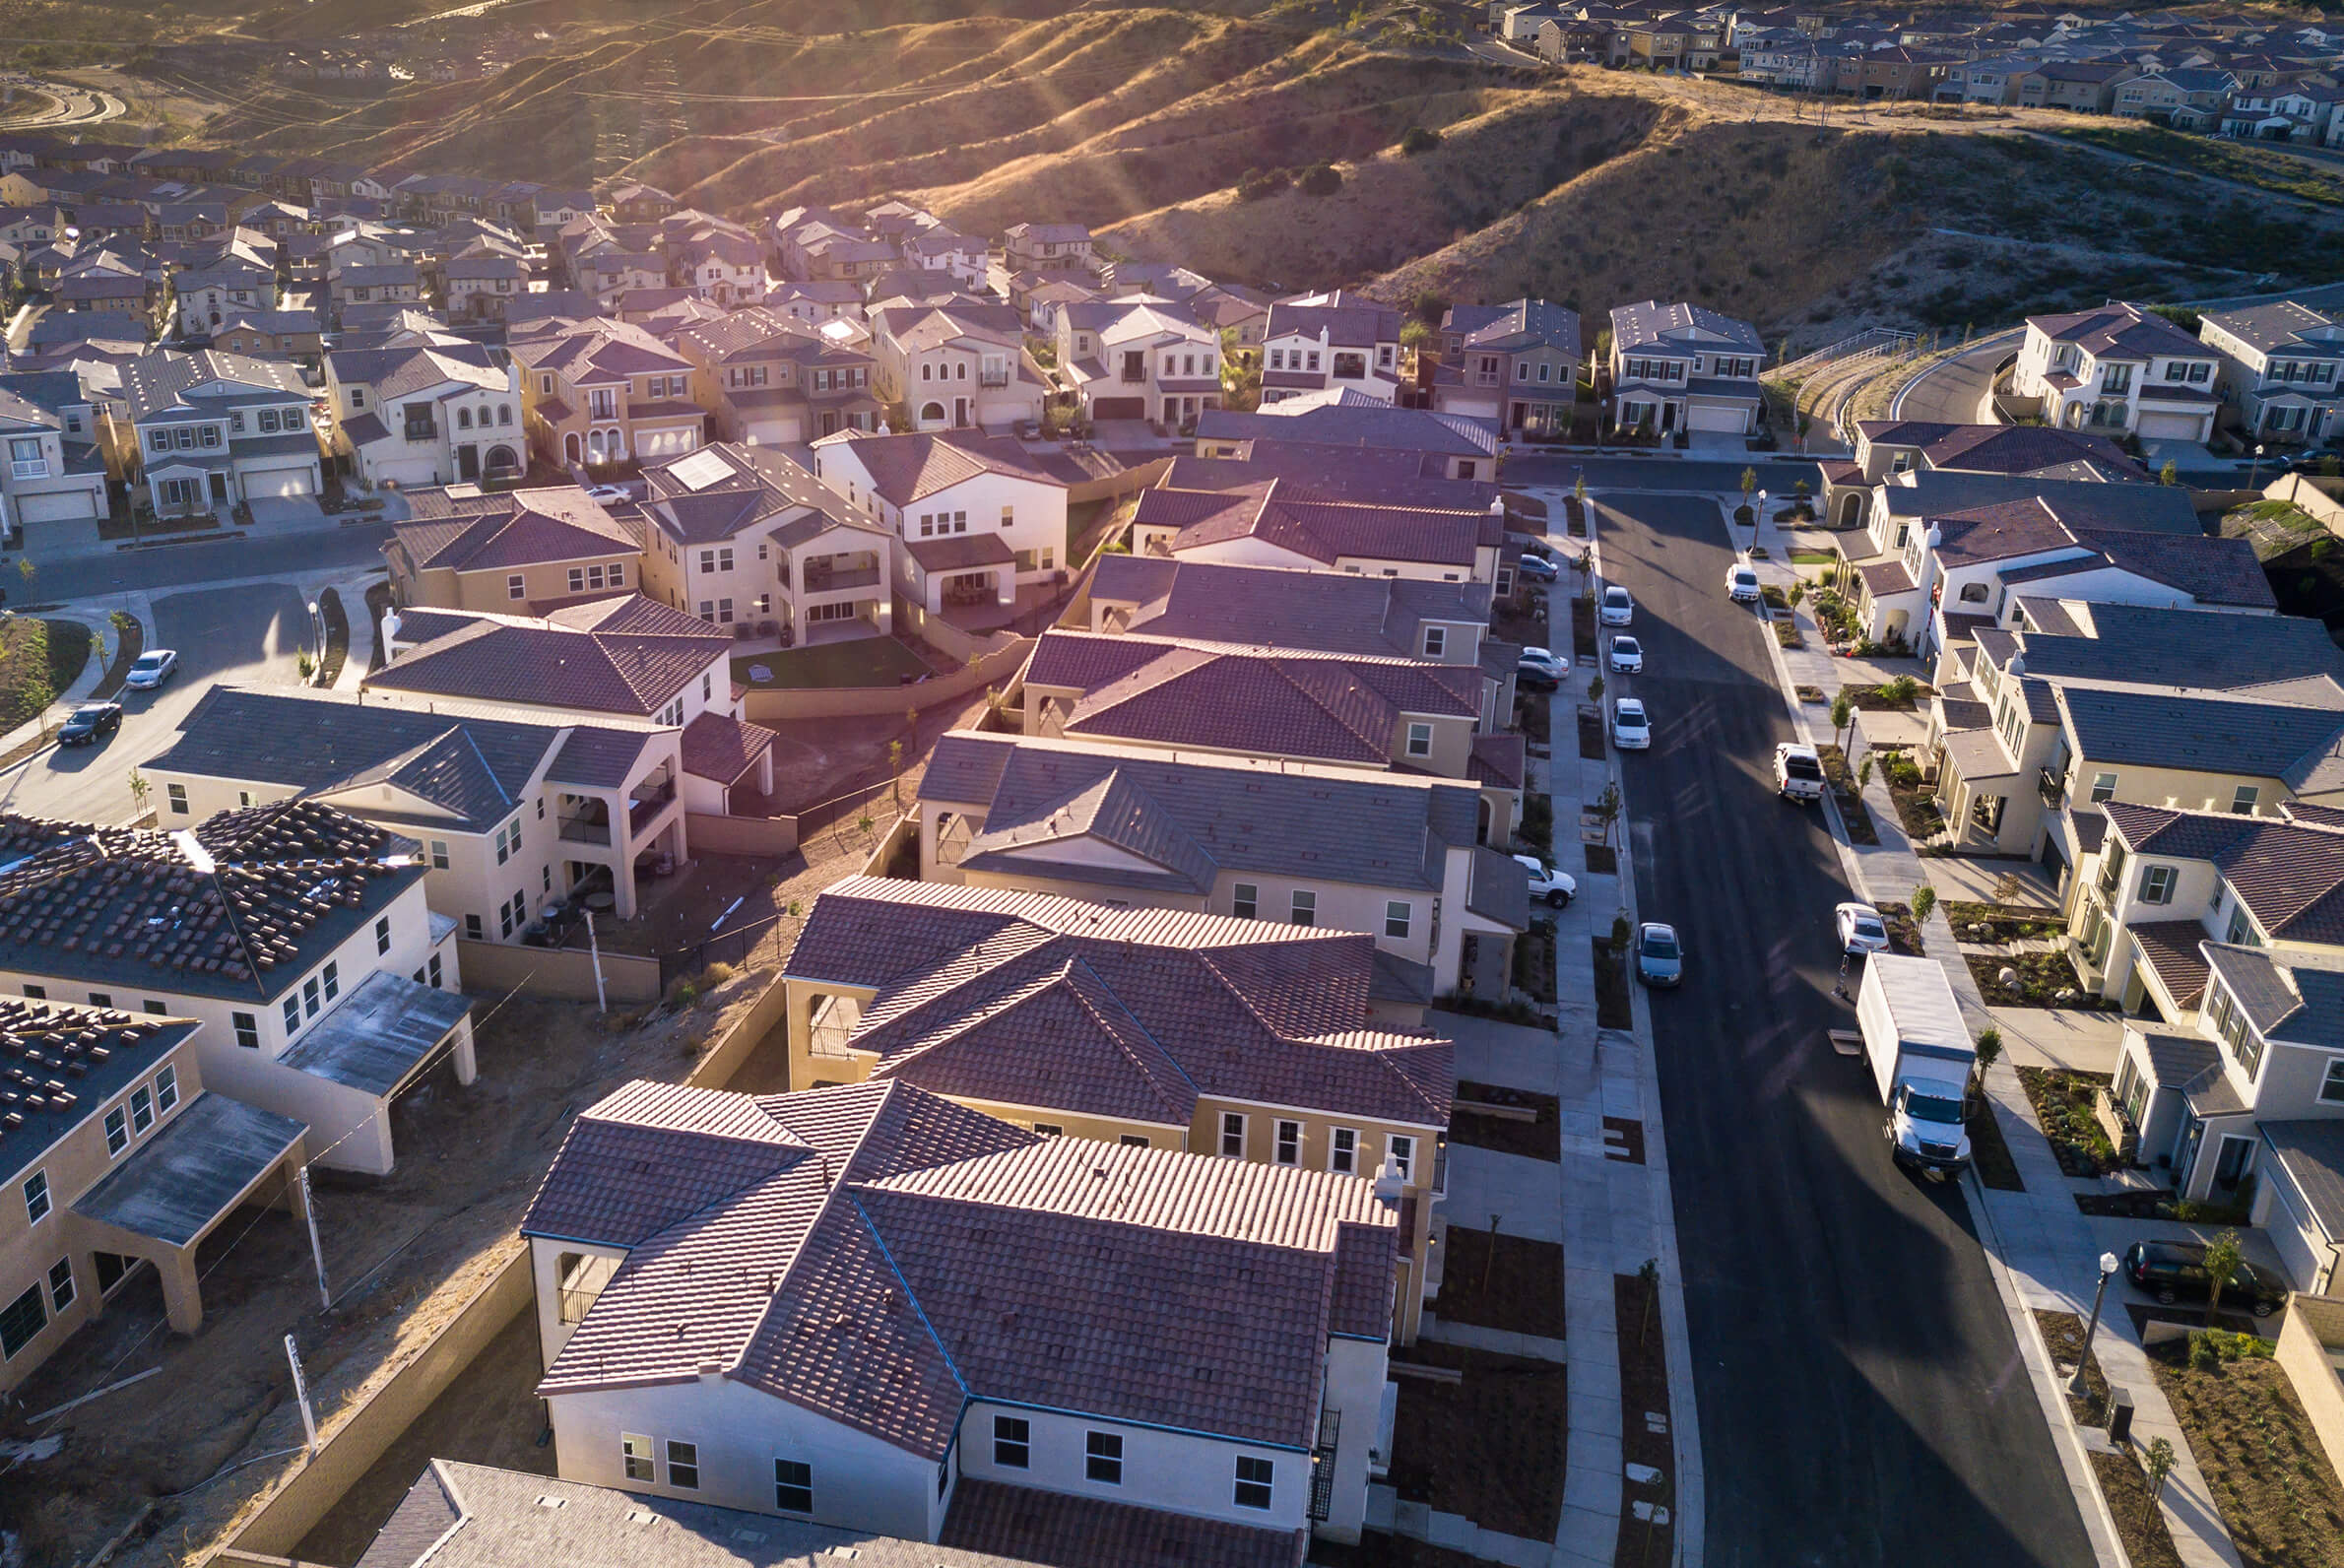 Learn more about how the American economy is affected by the real estate industry.